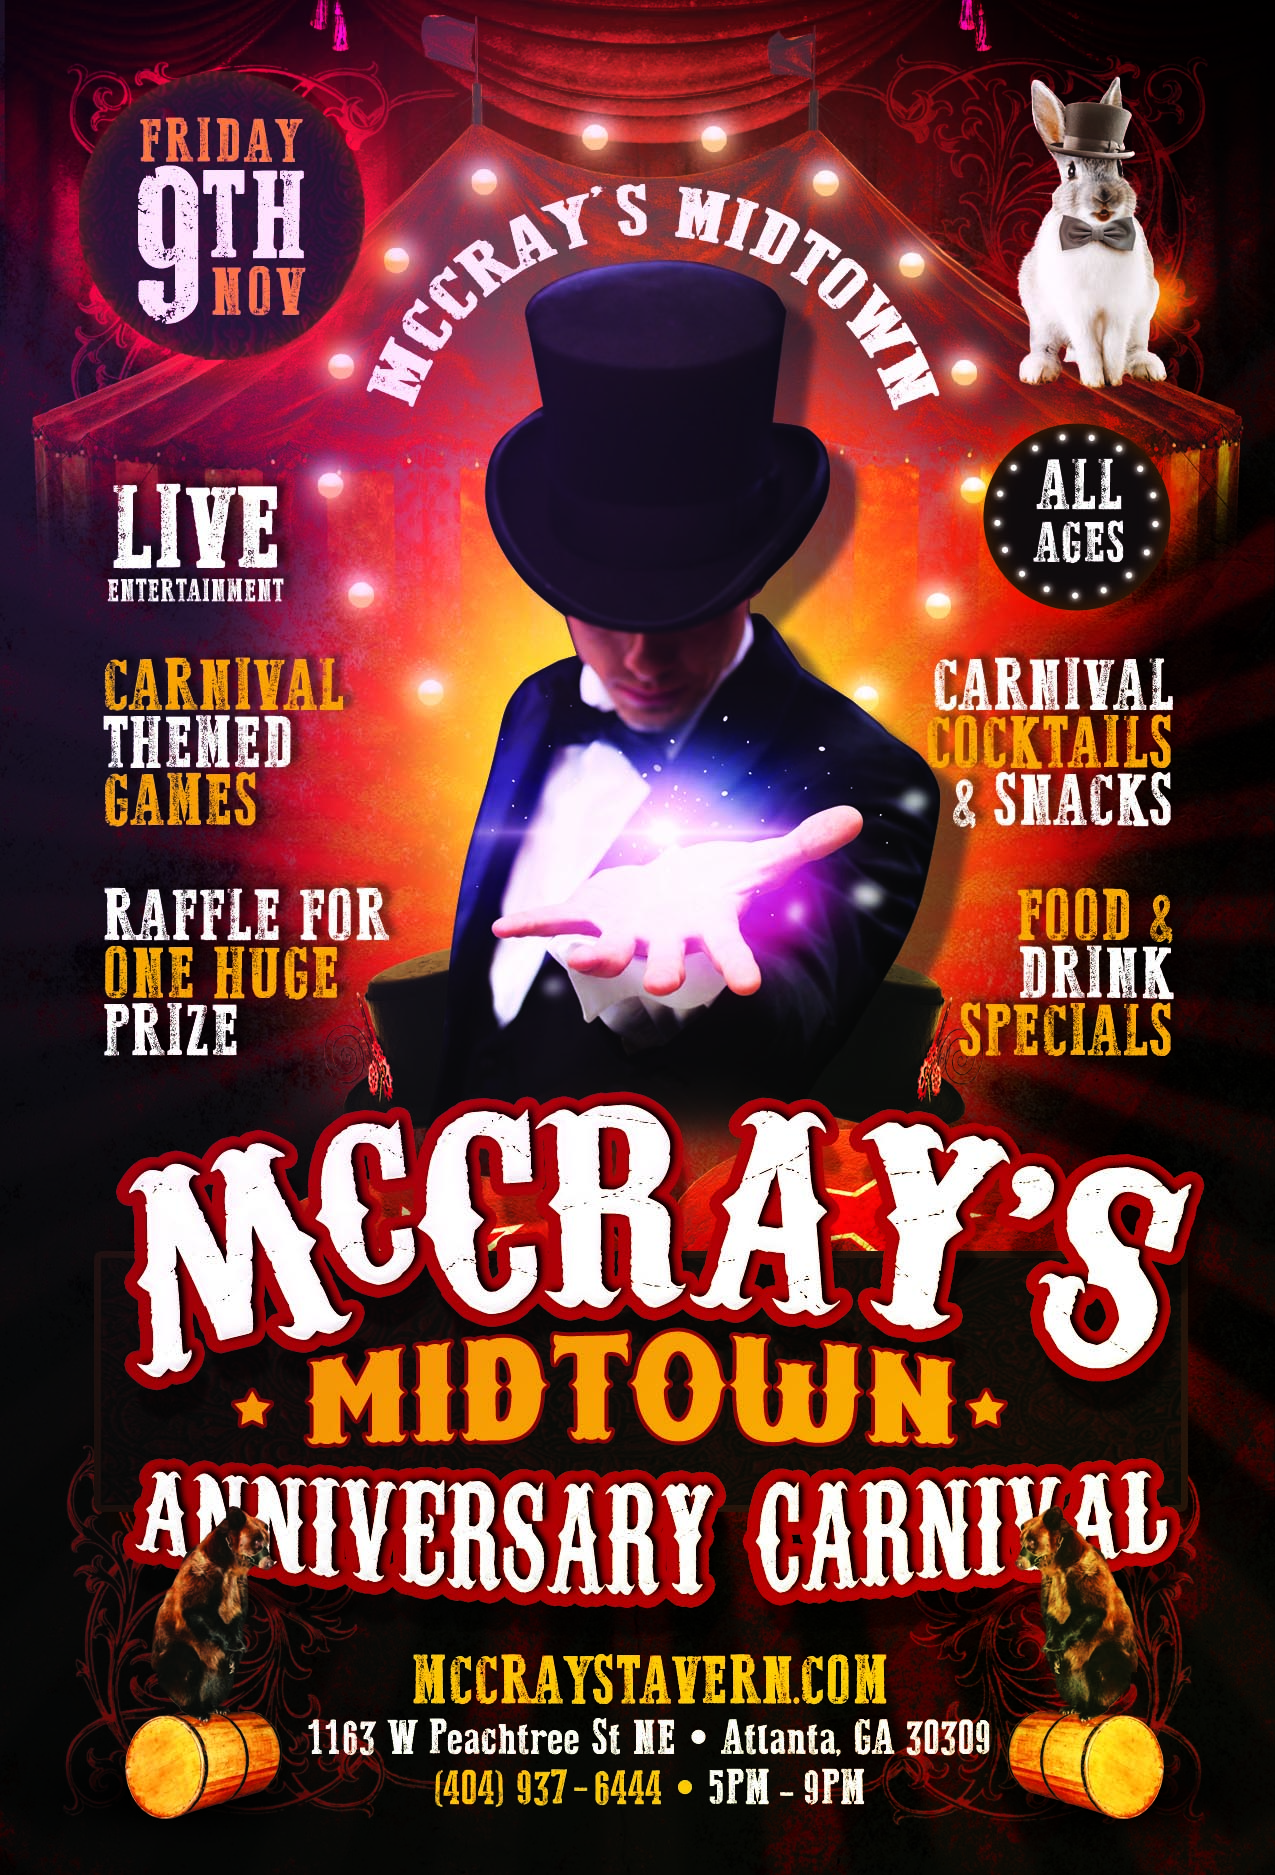 McCray's Midtown 1 Year Anniversary